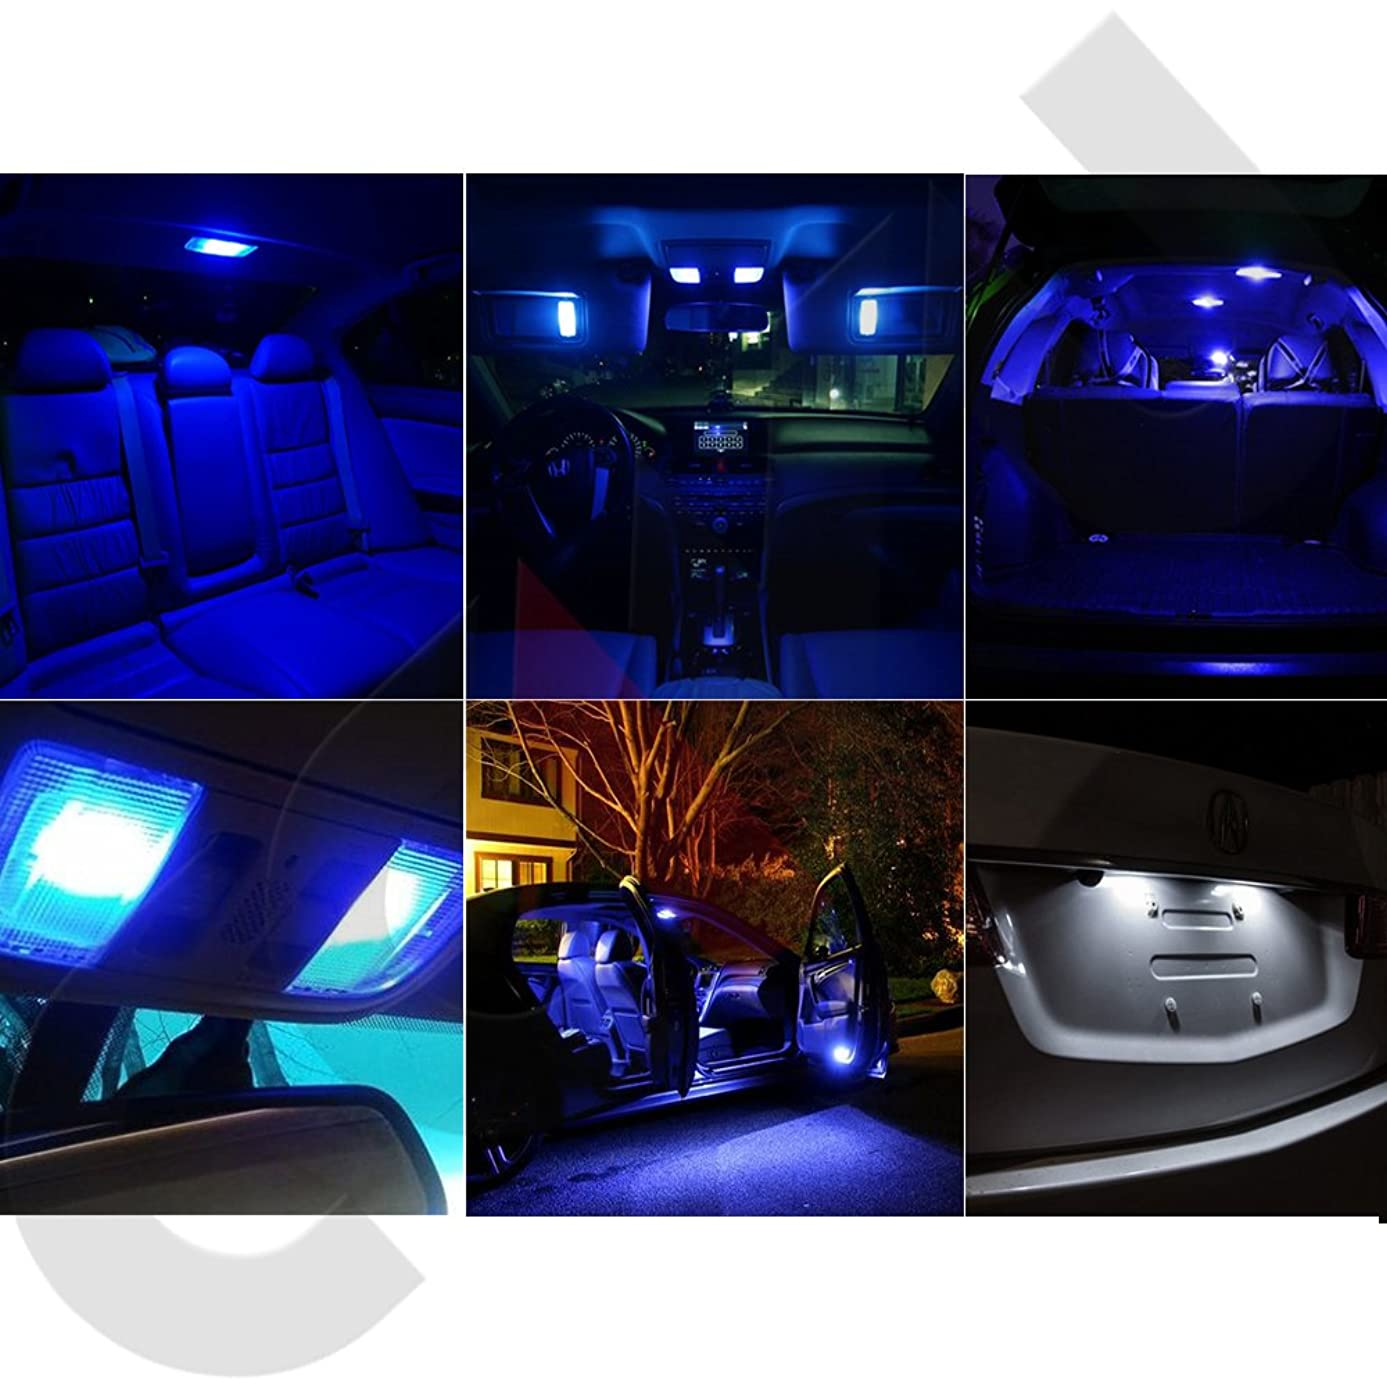 OCPTY 10 Pack Blue Accessories Replacement Package Kit Replacement fit for 2002-2008 Dodge RAM 1500 LED Bulb LED Interior Lights